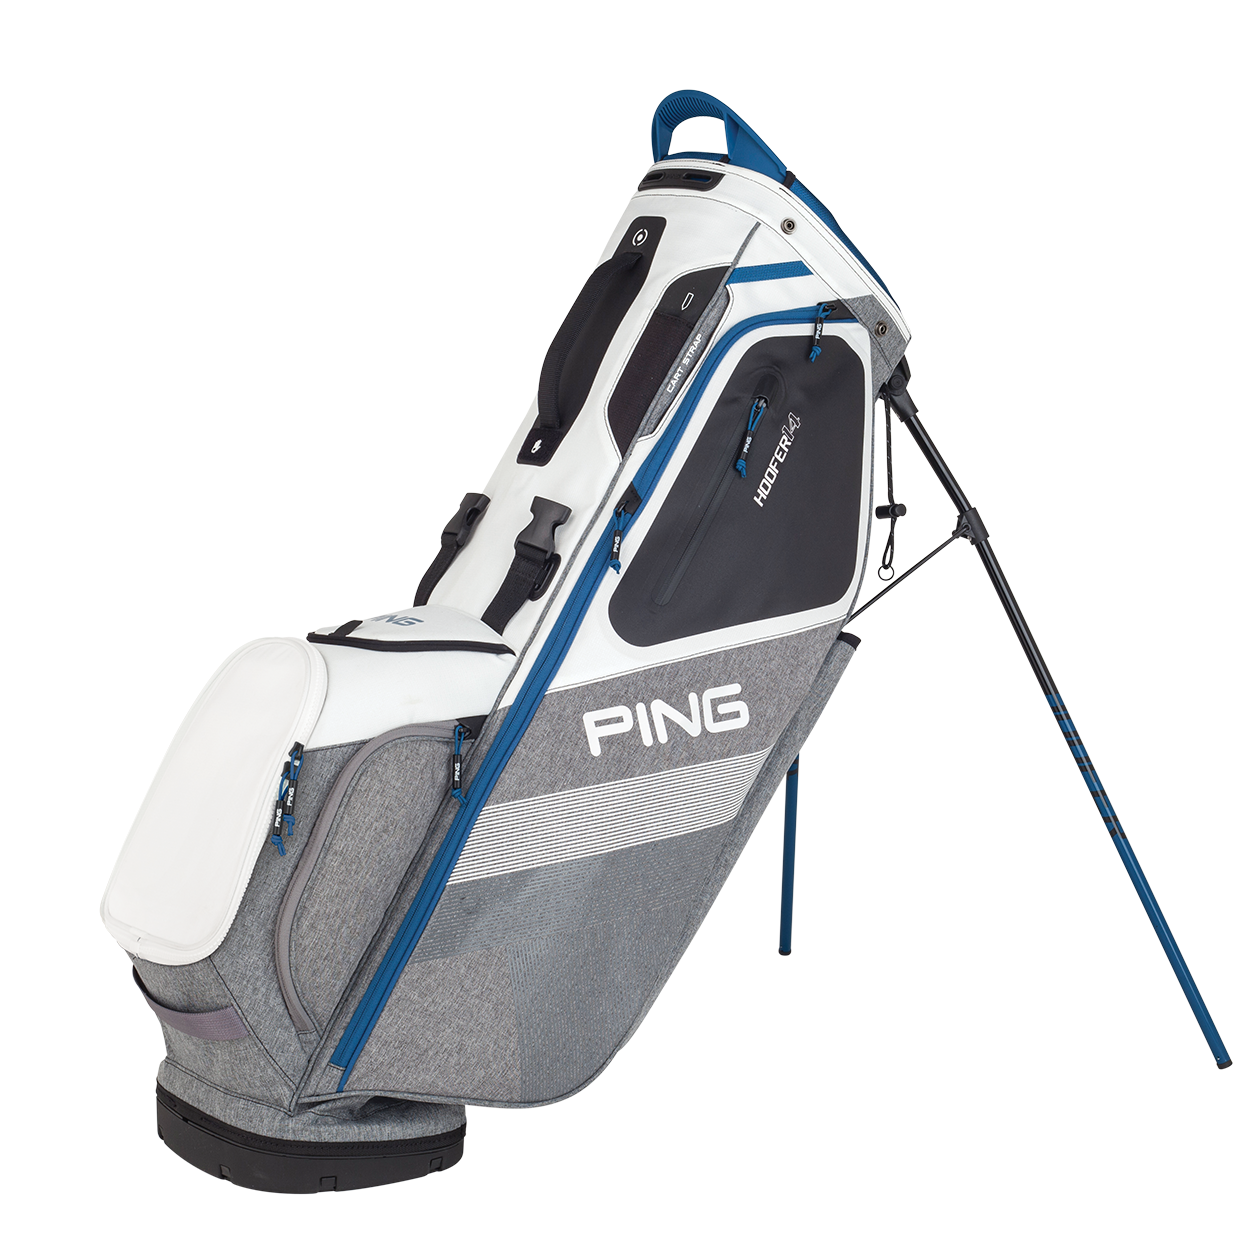 Ping Hoofer 14 Stand Bag Pga Tour Superstore